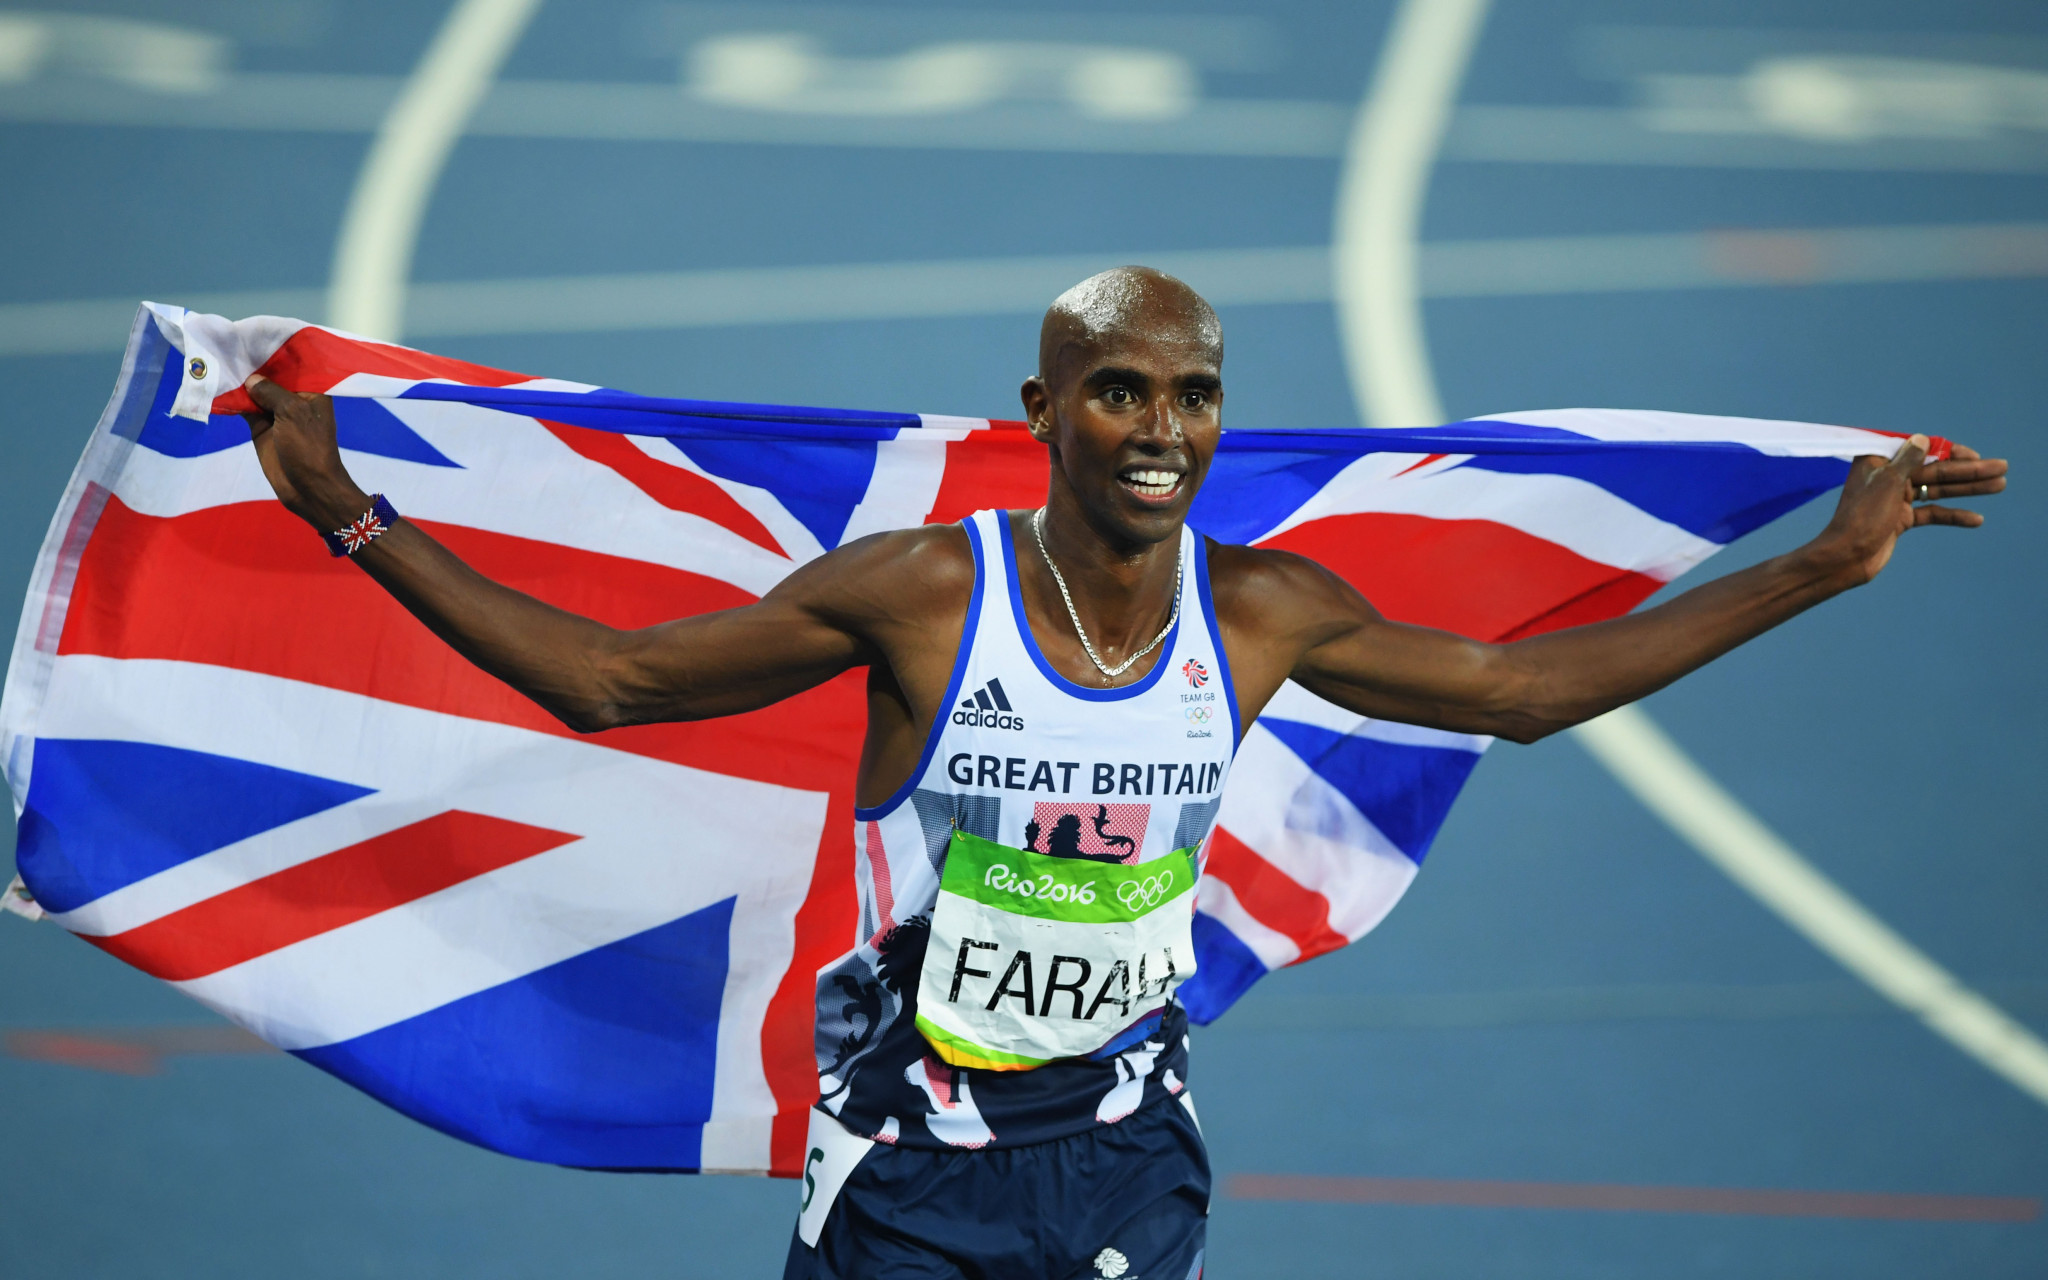 Joanna Coates rejected claims UK Athletics were trying to protect the medical data of Sir Mo Farah ©Getty Images